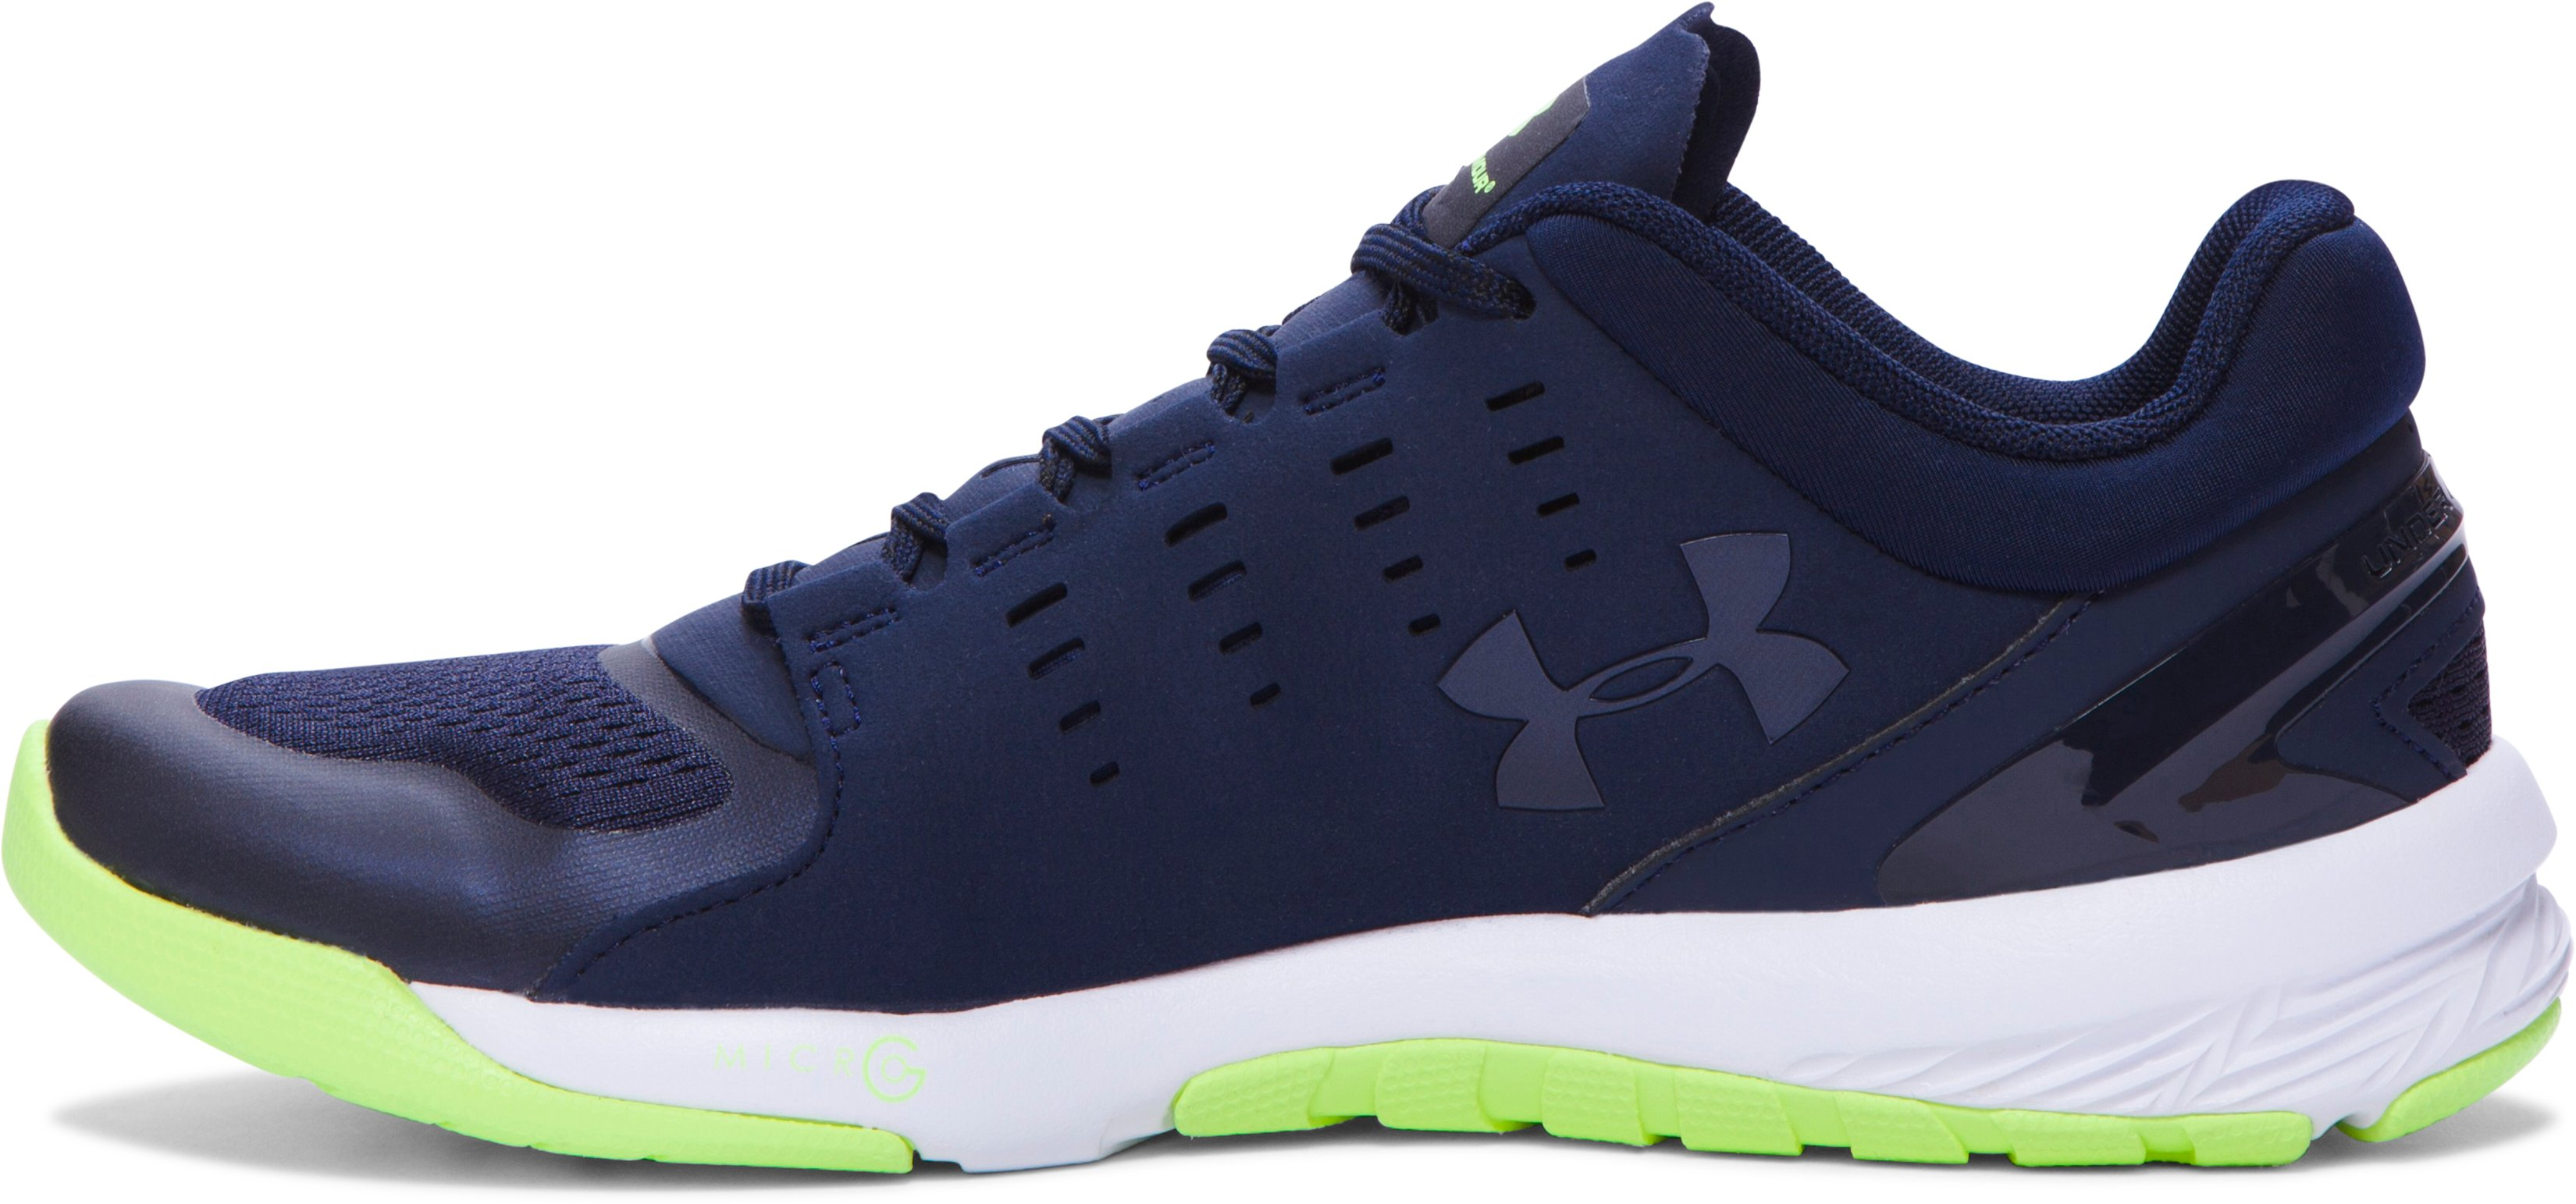 Women's UA Charged Stunner Training Shoes, Midnight Navy